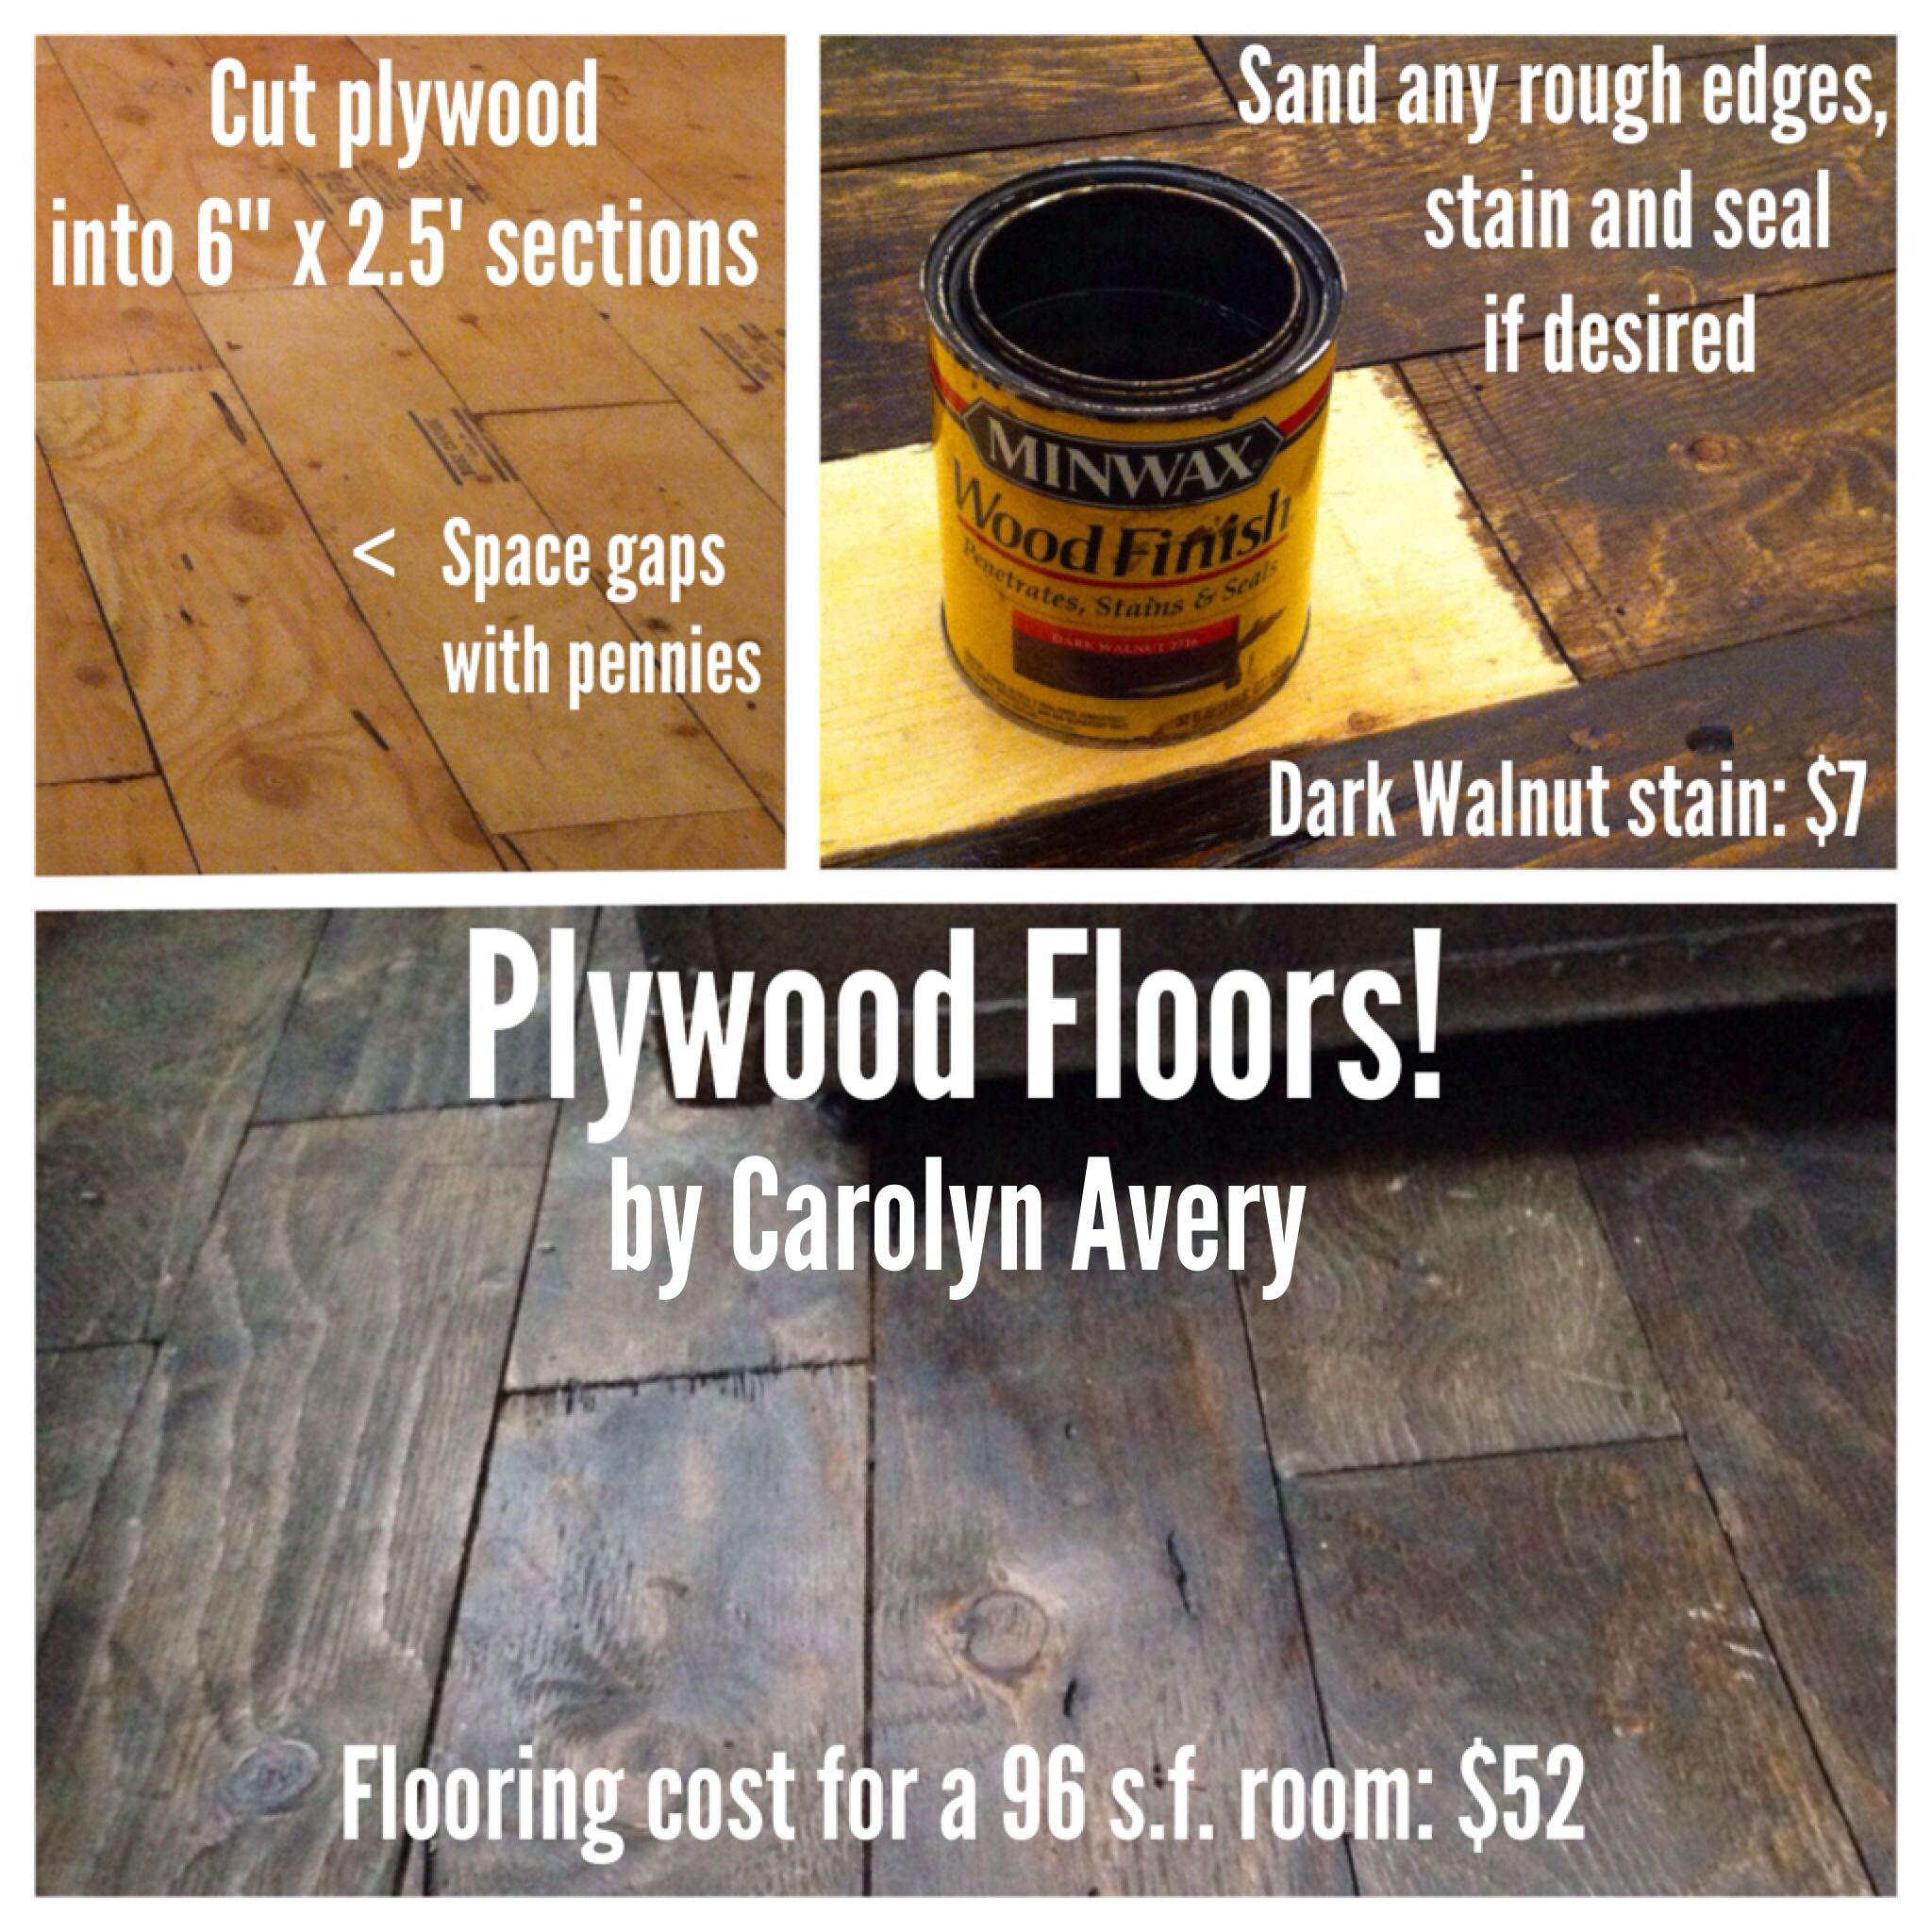 Plywood floors I installed in my 8x12 cabin. Such a cheap floor ...